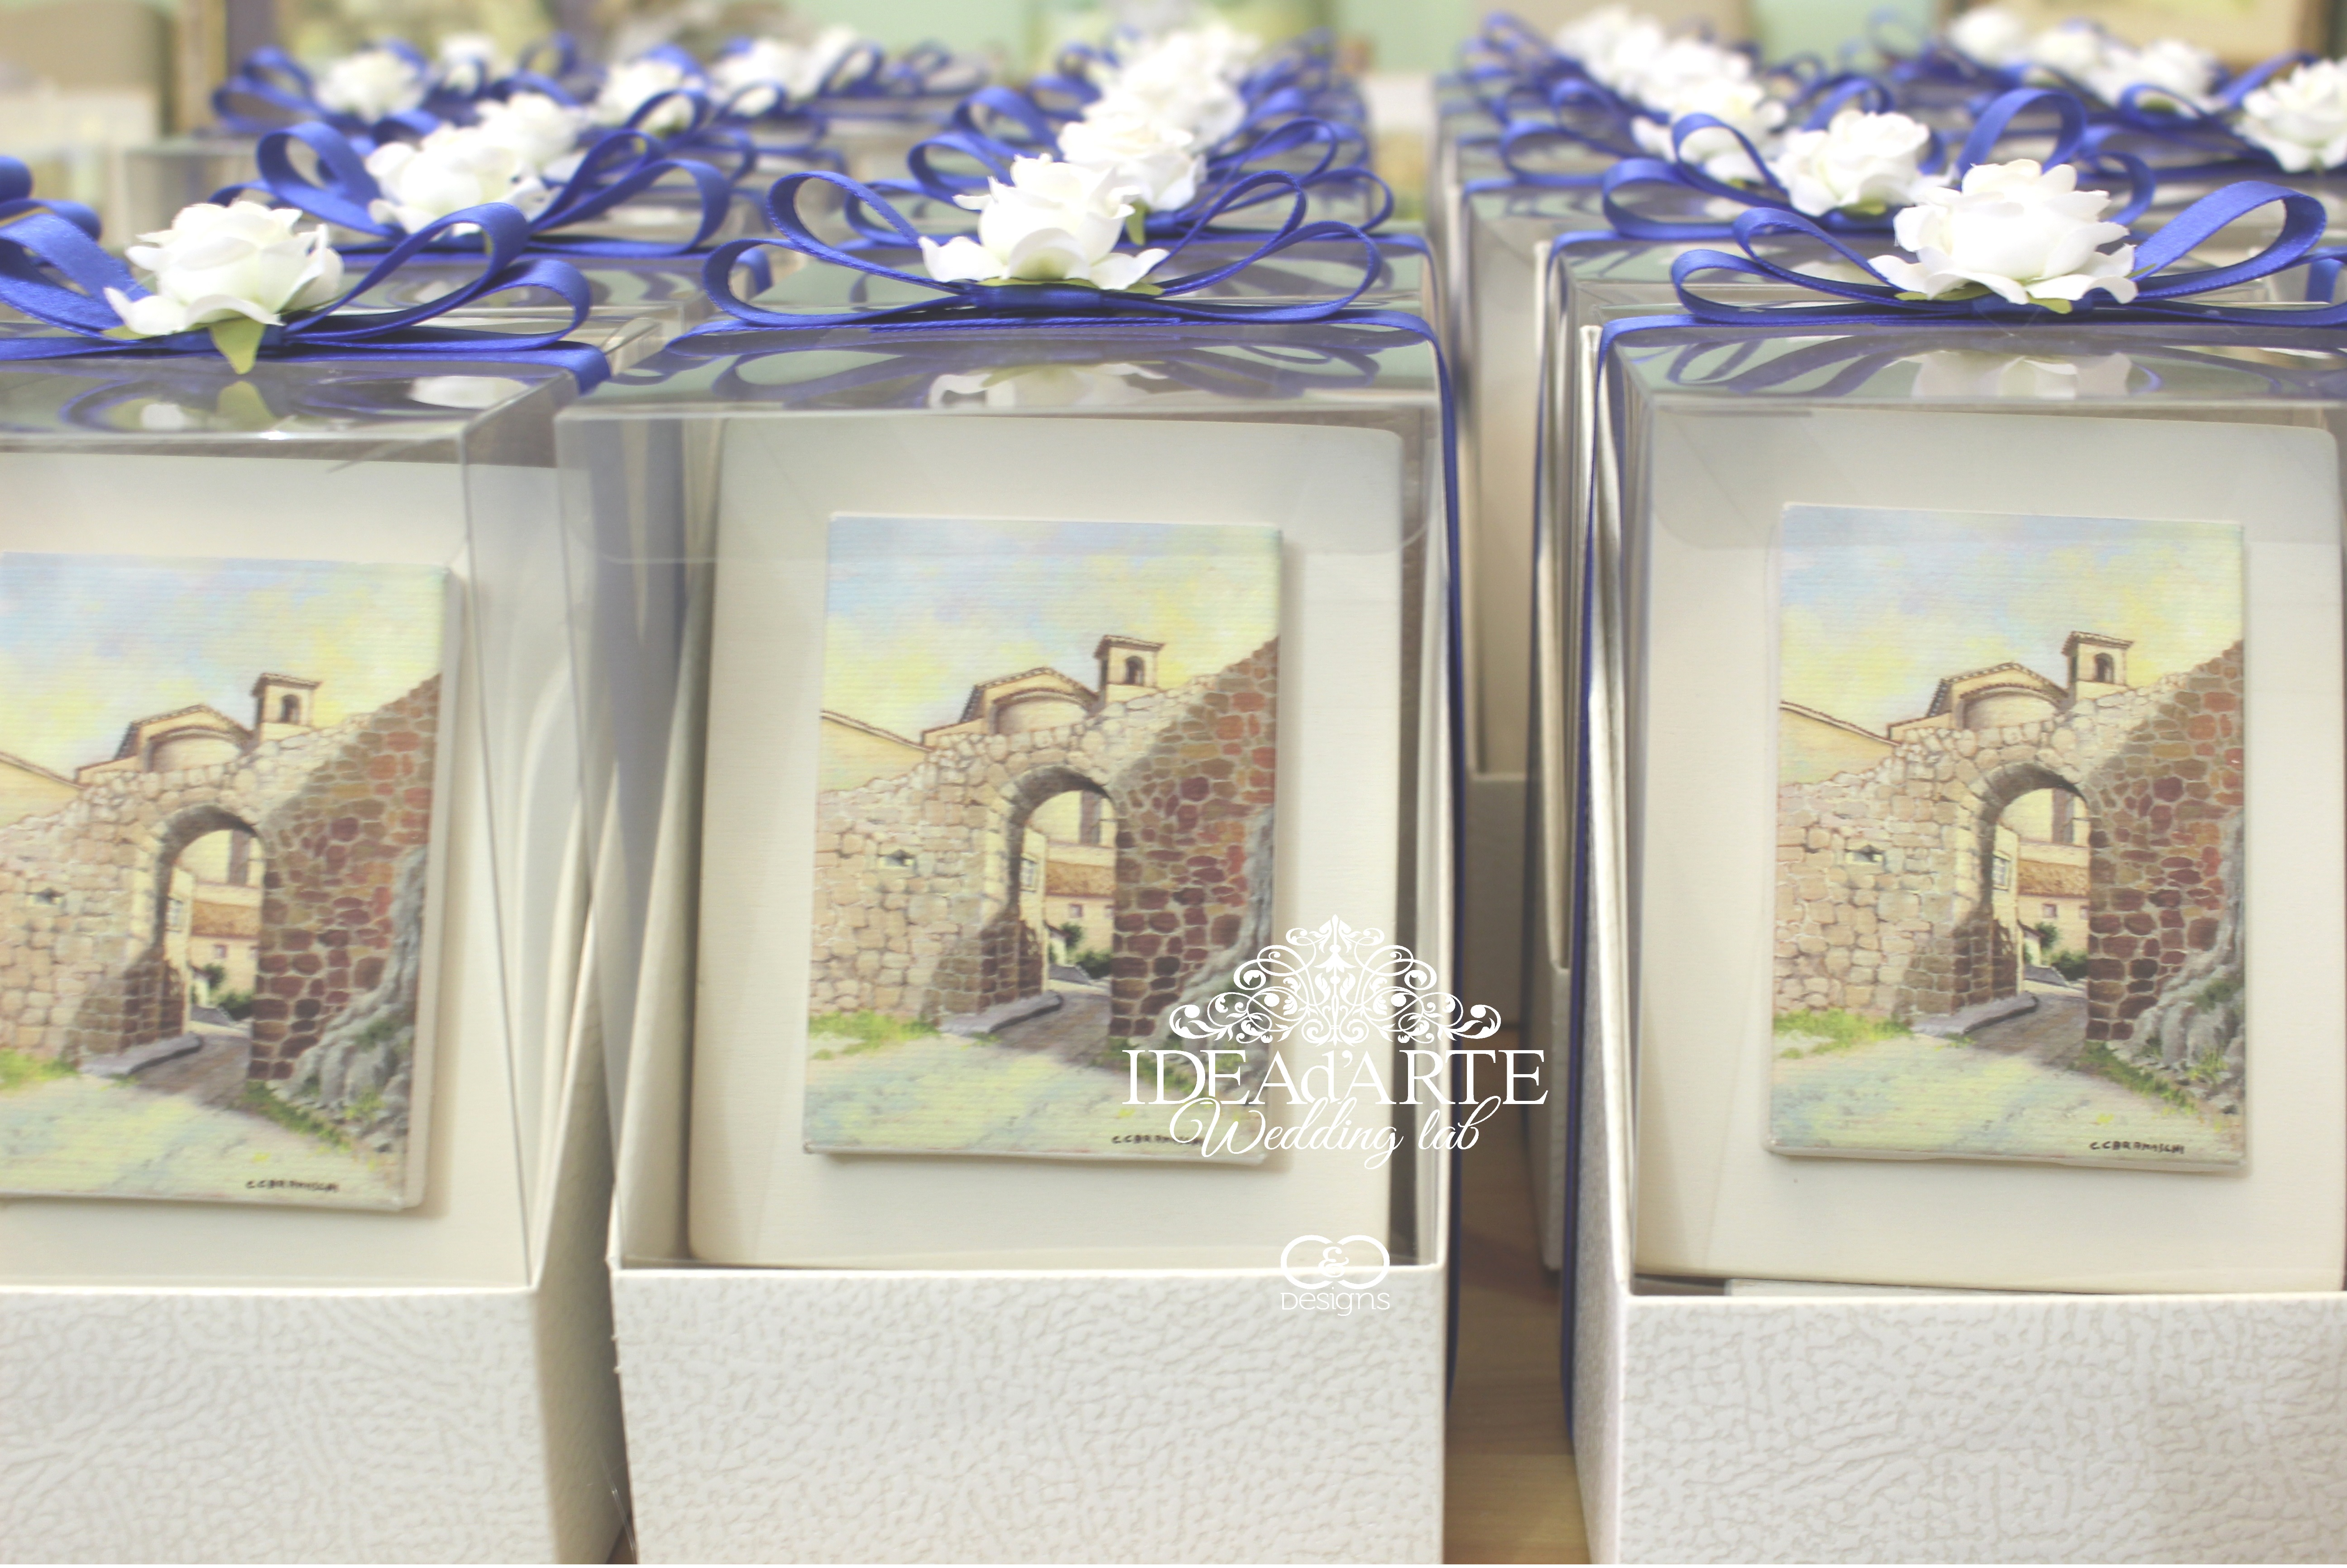 Artistic wedding favors - Roma, Italy - Idea of art Keepsakes